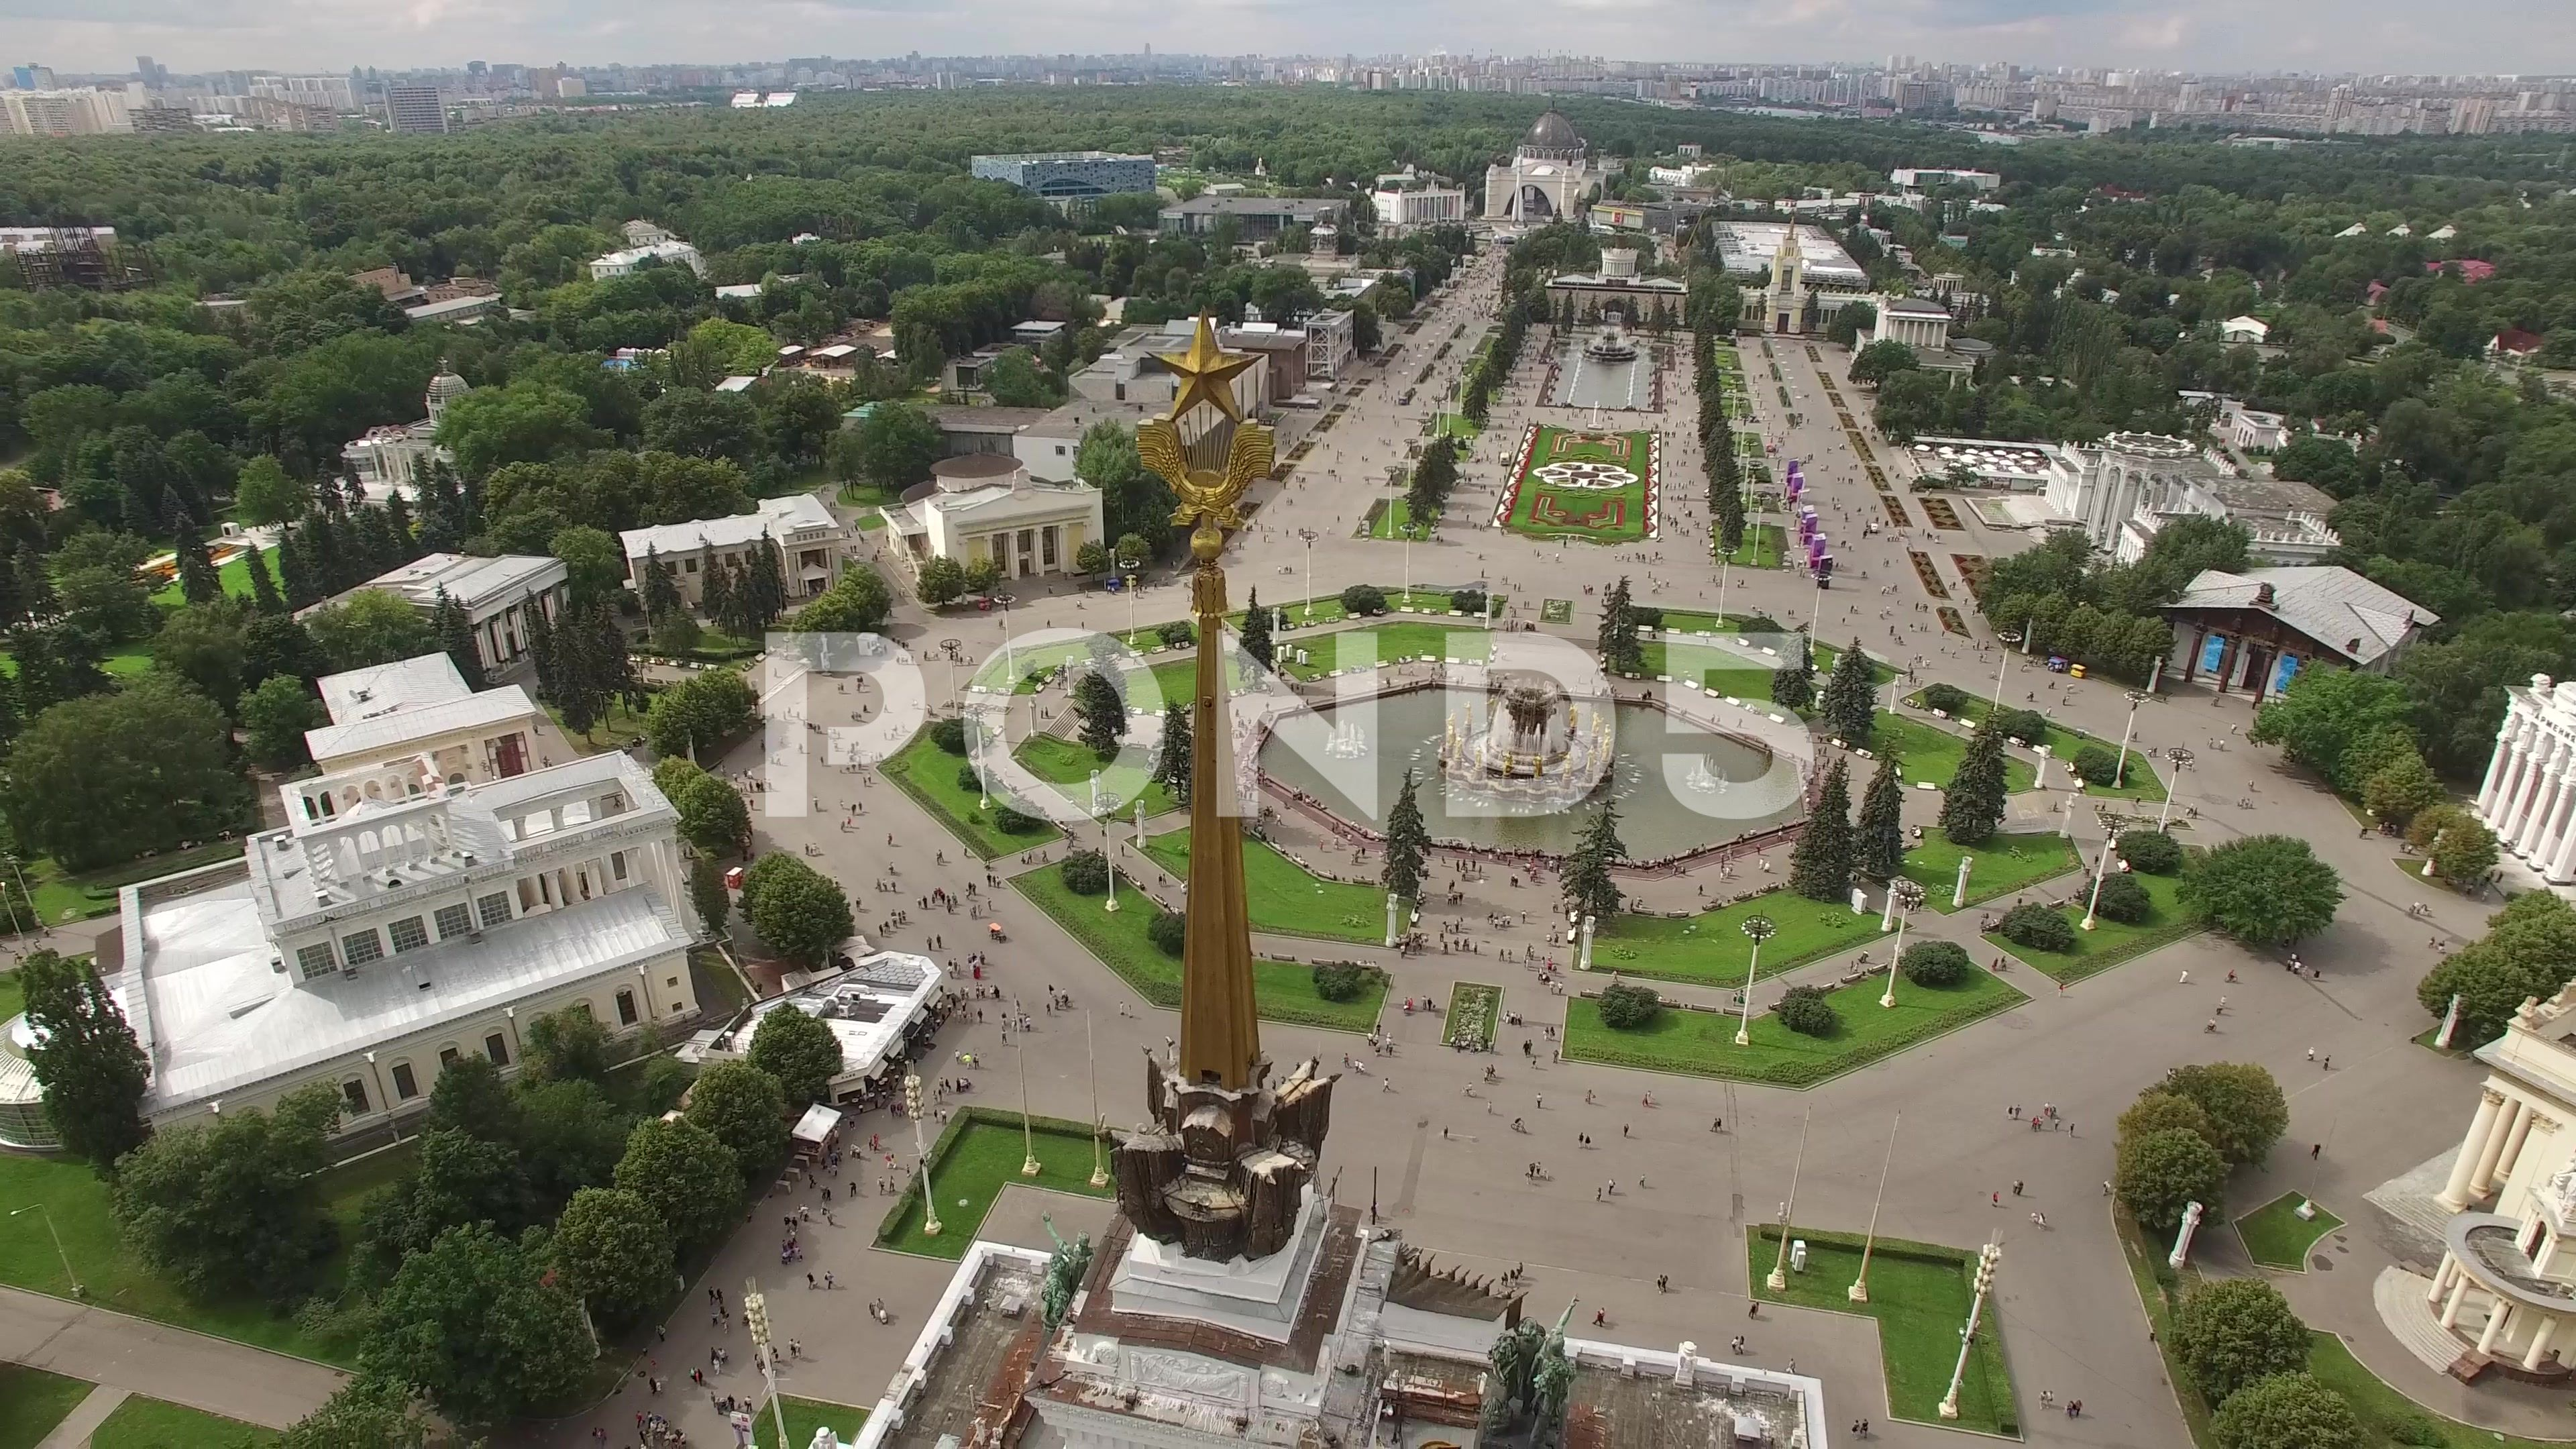 Park Vdnkh In Moscow From Above Central Walk And Fountains Happy People Uniqu Stock Footage Central Walk Moscow Park Park Stock Footage Fountains